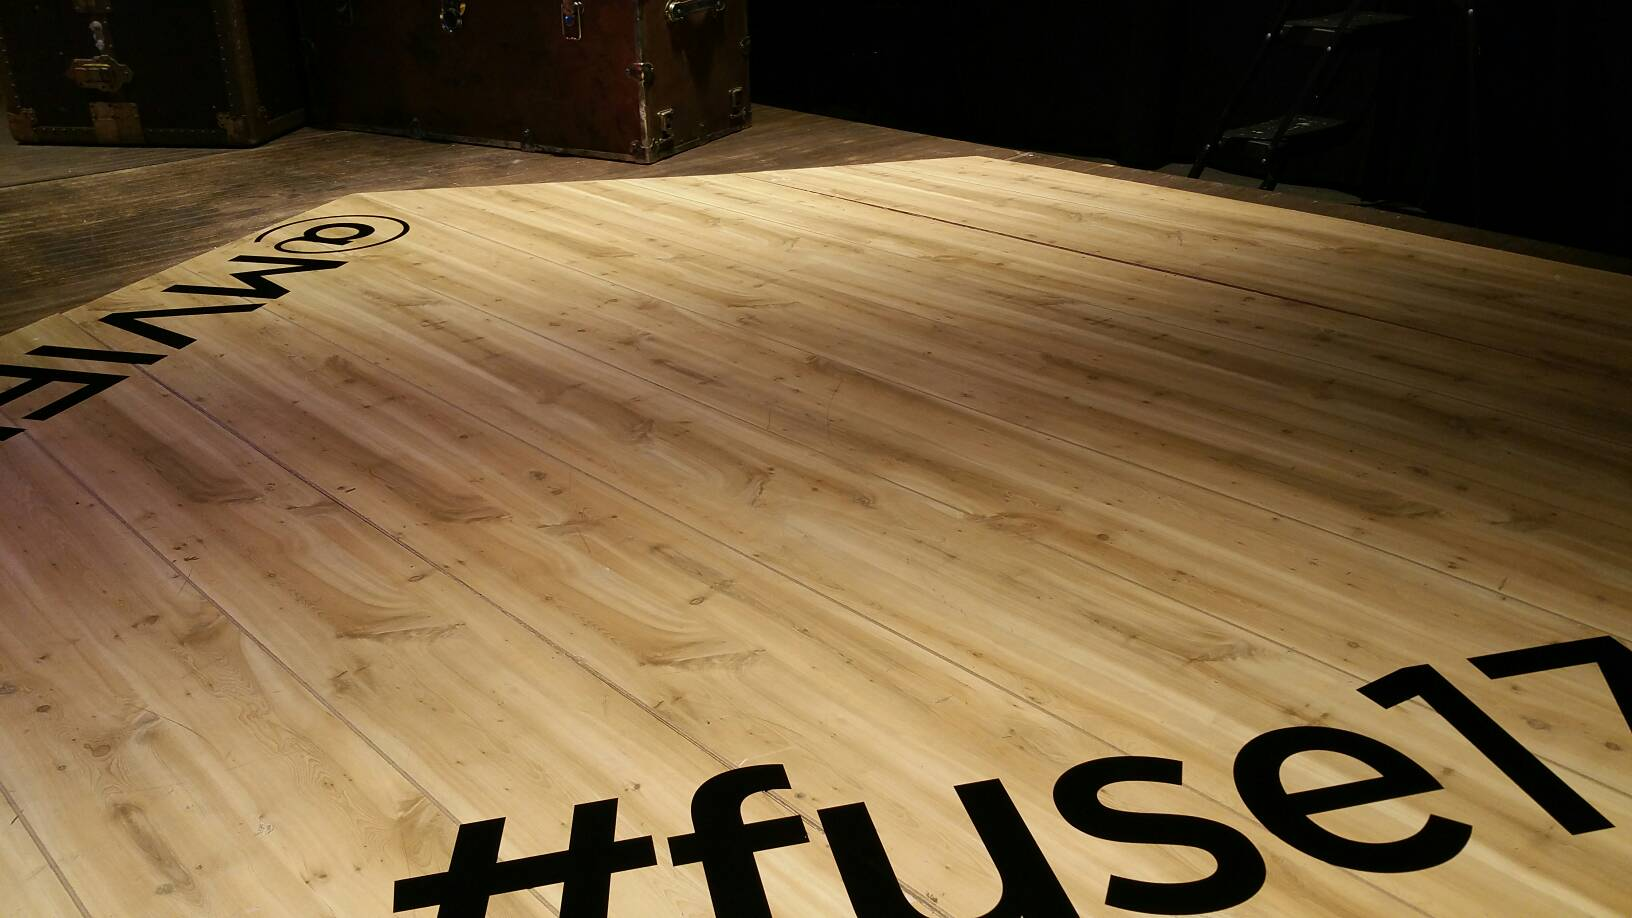 The MoVe Stage is set for #fuse17 - the one-of-a-kind design thinking experience! https://t.co/E3OIDcq2mA